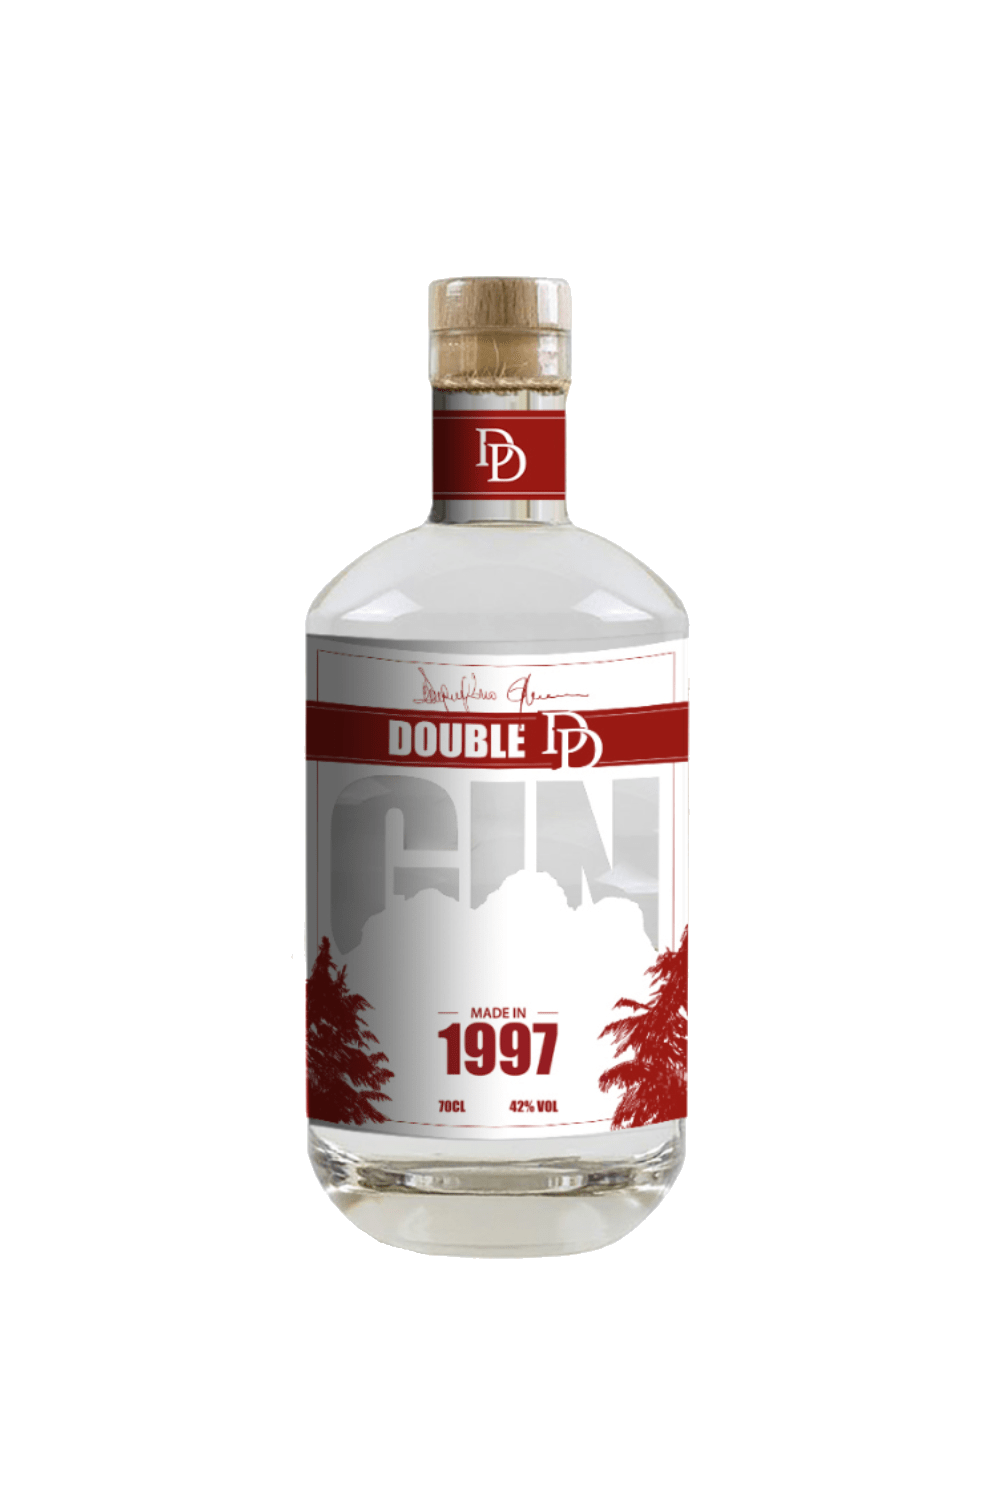 Double D London Dry Gin